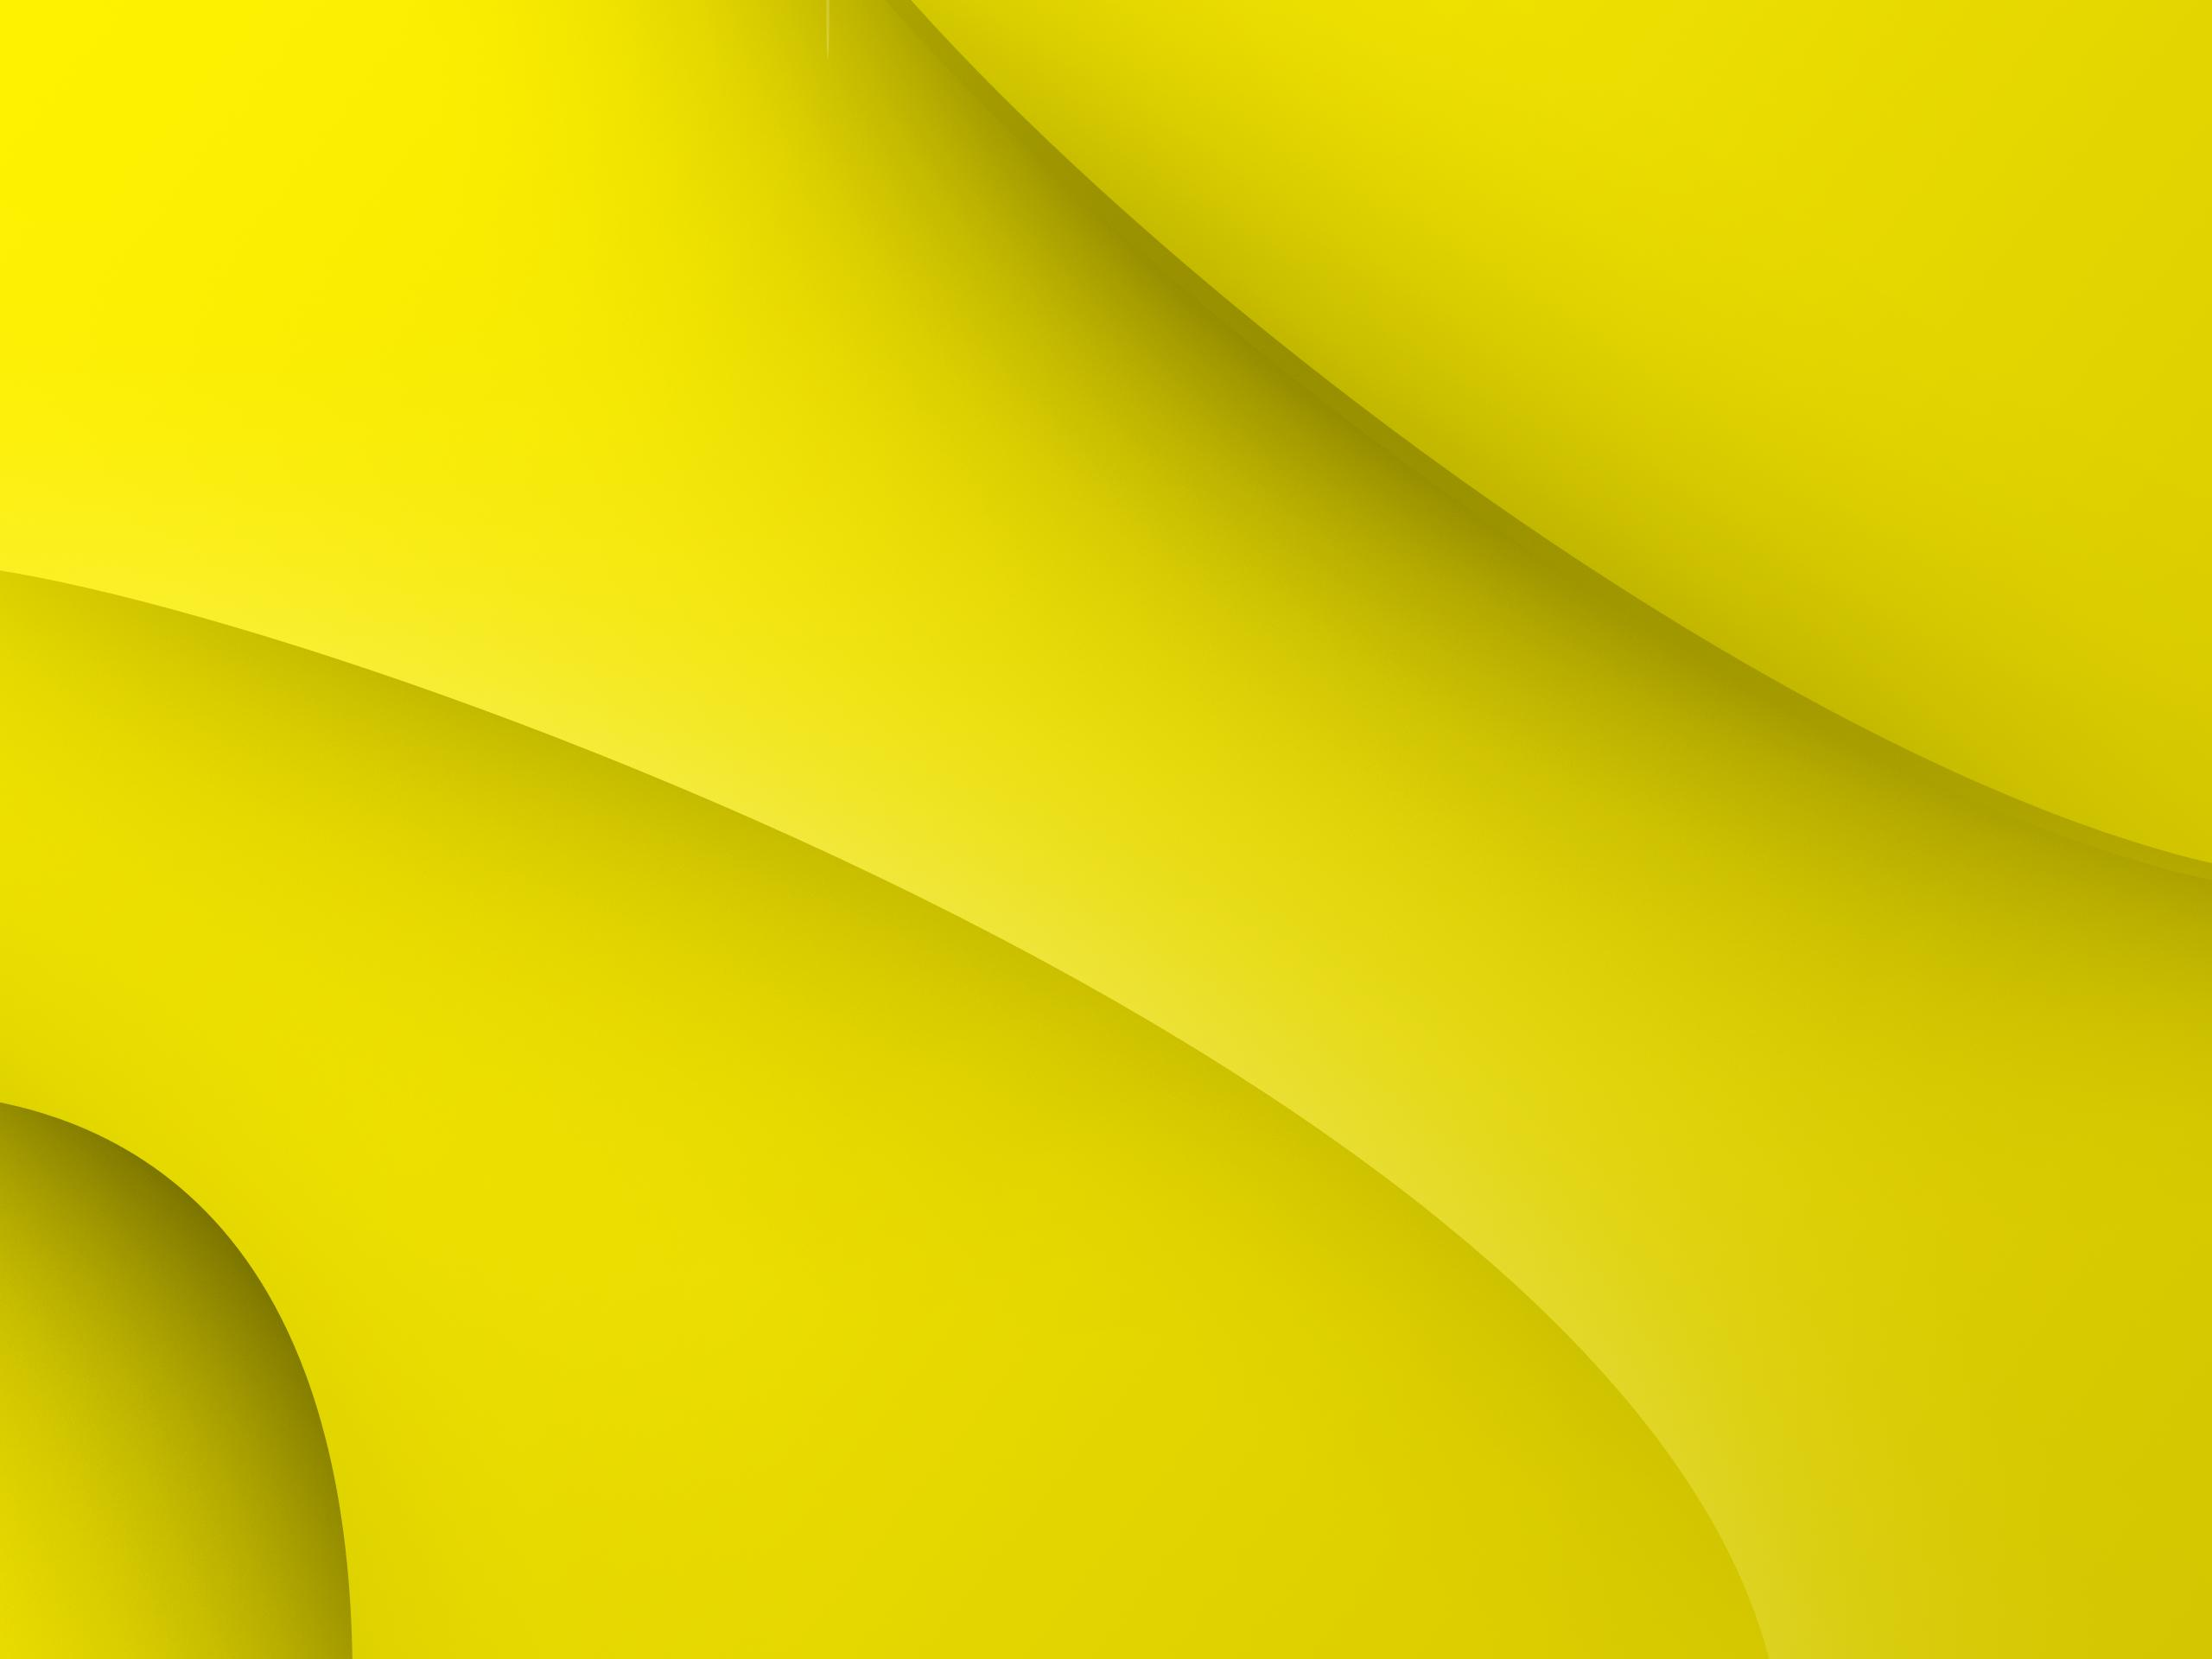 Yellow Background Images Wallpaper Cave